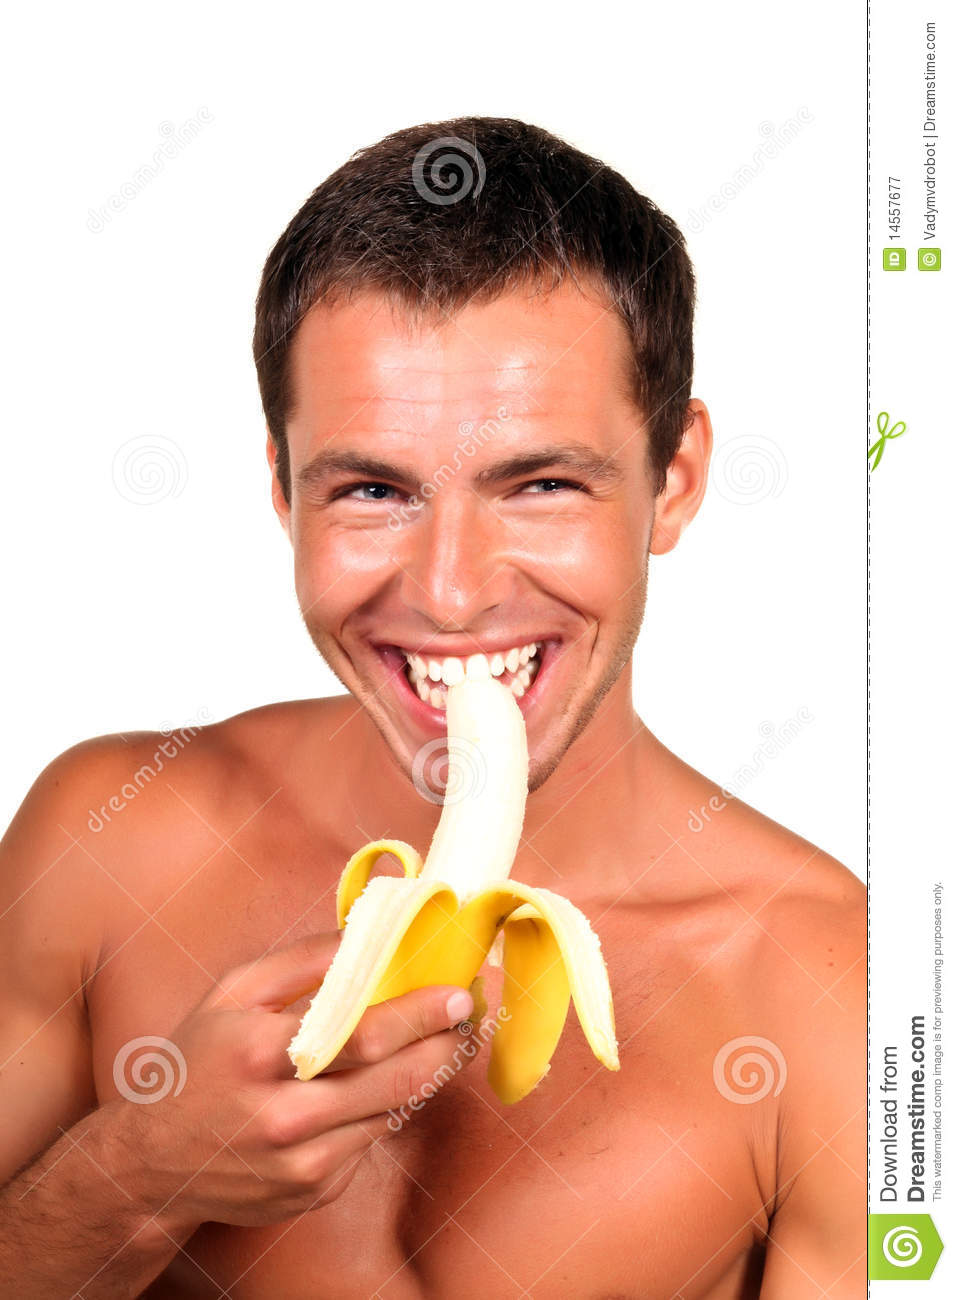 Man eating banana stock image. Image of body, isolation ...